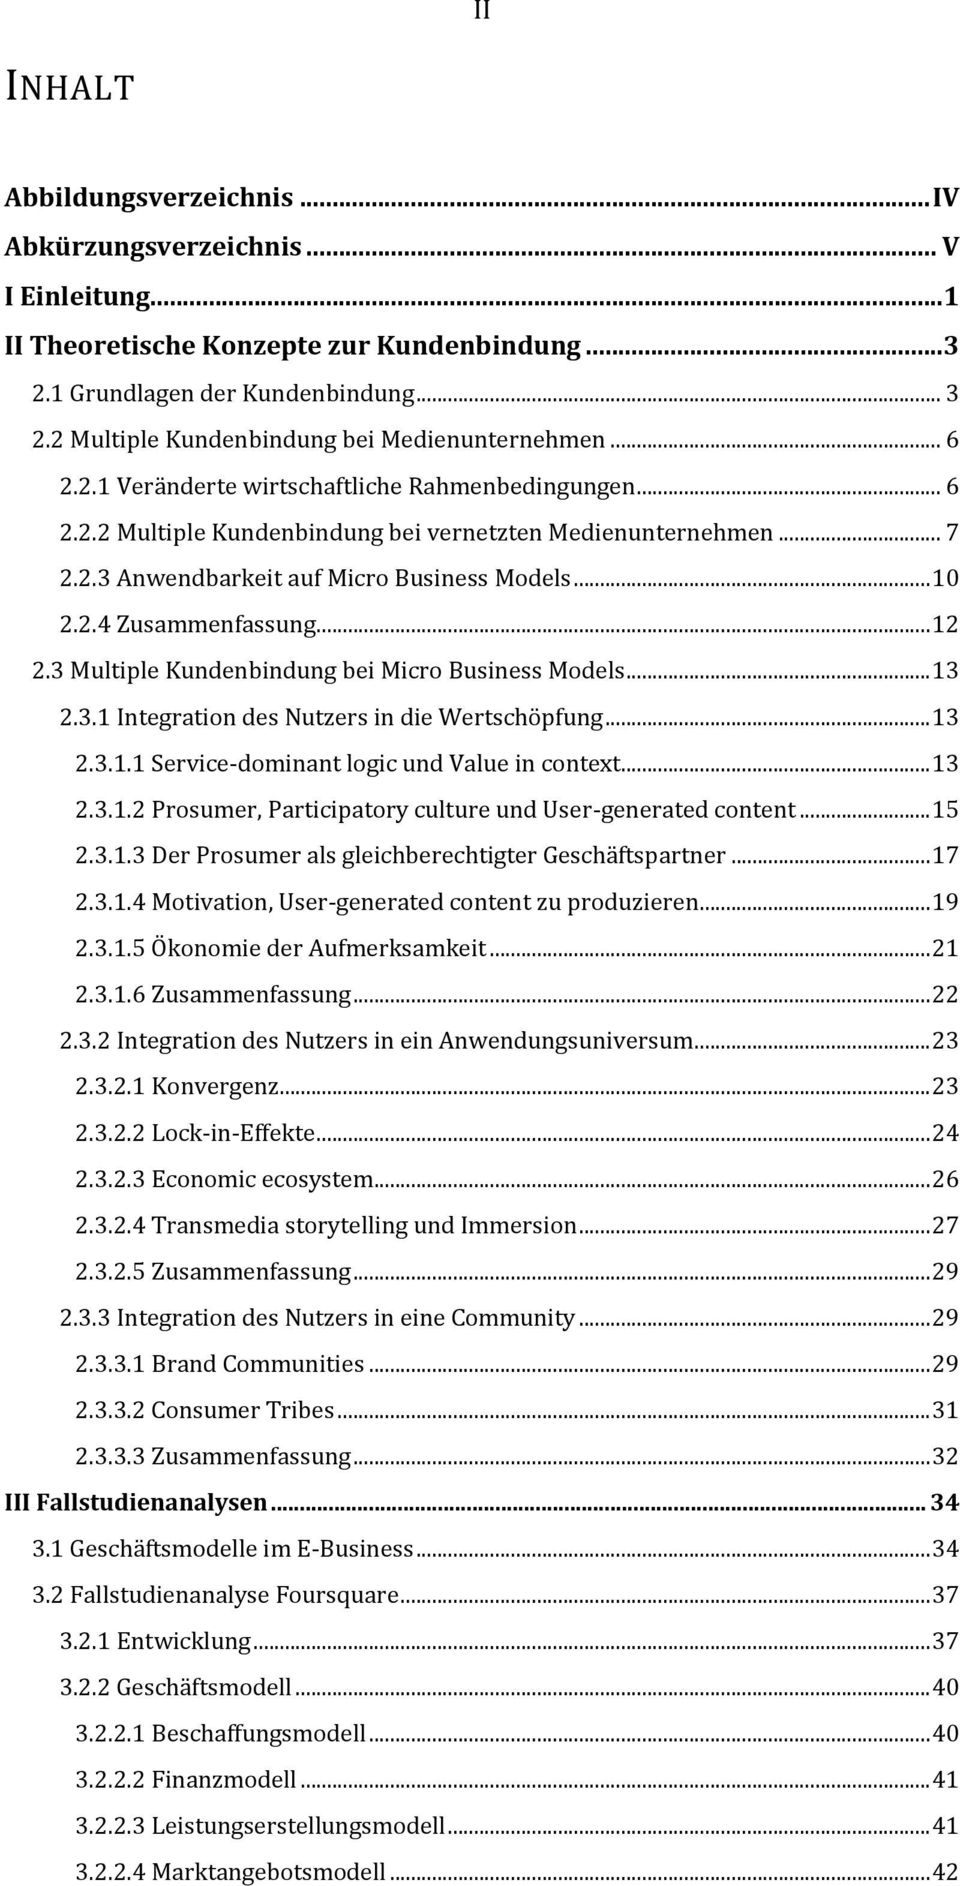 .. 10 2.2.4 Zusammenfassung... 12 2.3 Multiple Kundenbindung bei Micro Business Models... 13 2.3.1 Integration des Nutzers in die Wertschöpfung... 13 2.3.1.1 Service-dominant logic und Value in context.